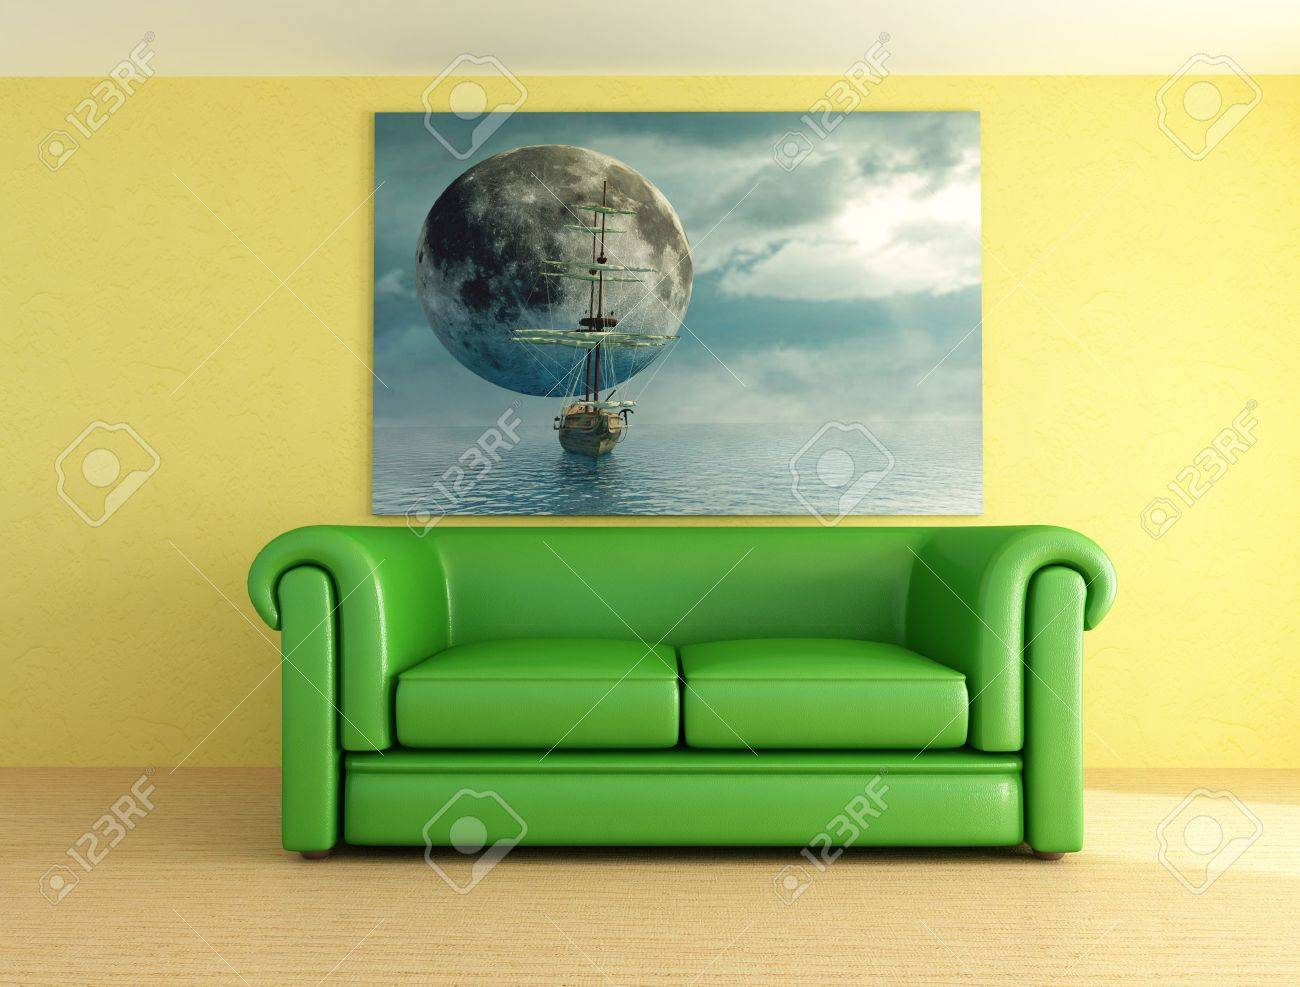 Green Leather Sofa And Picture -digital Artwork Stock Photo - 3432189